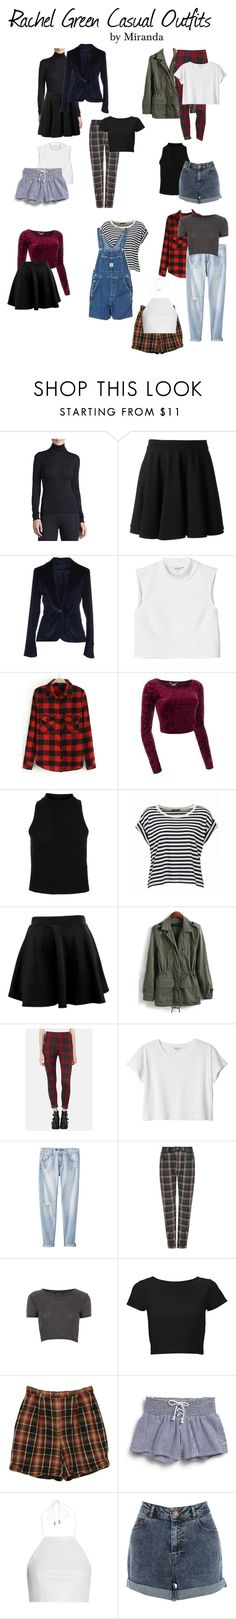 """Rachel Green Casual Outfits"" by sleep-alone ❤ liked on Polyvore featuring Hanro, Plein Sud, 57 T, Monki, TheLeesW, Topshop, Mossimo, Étoile Isabel Marant, Lipsy and Izod"